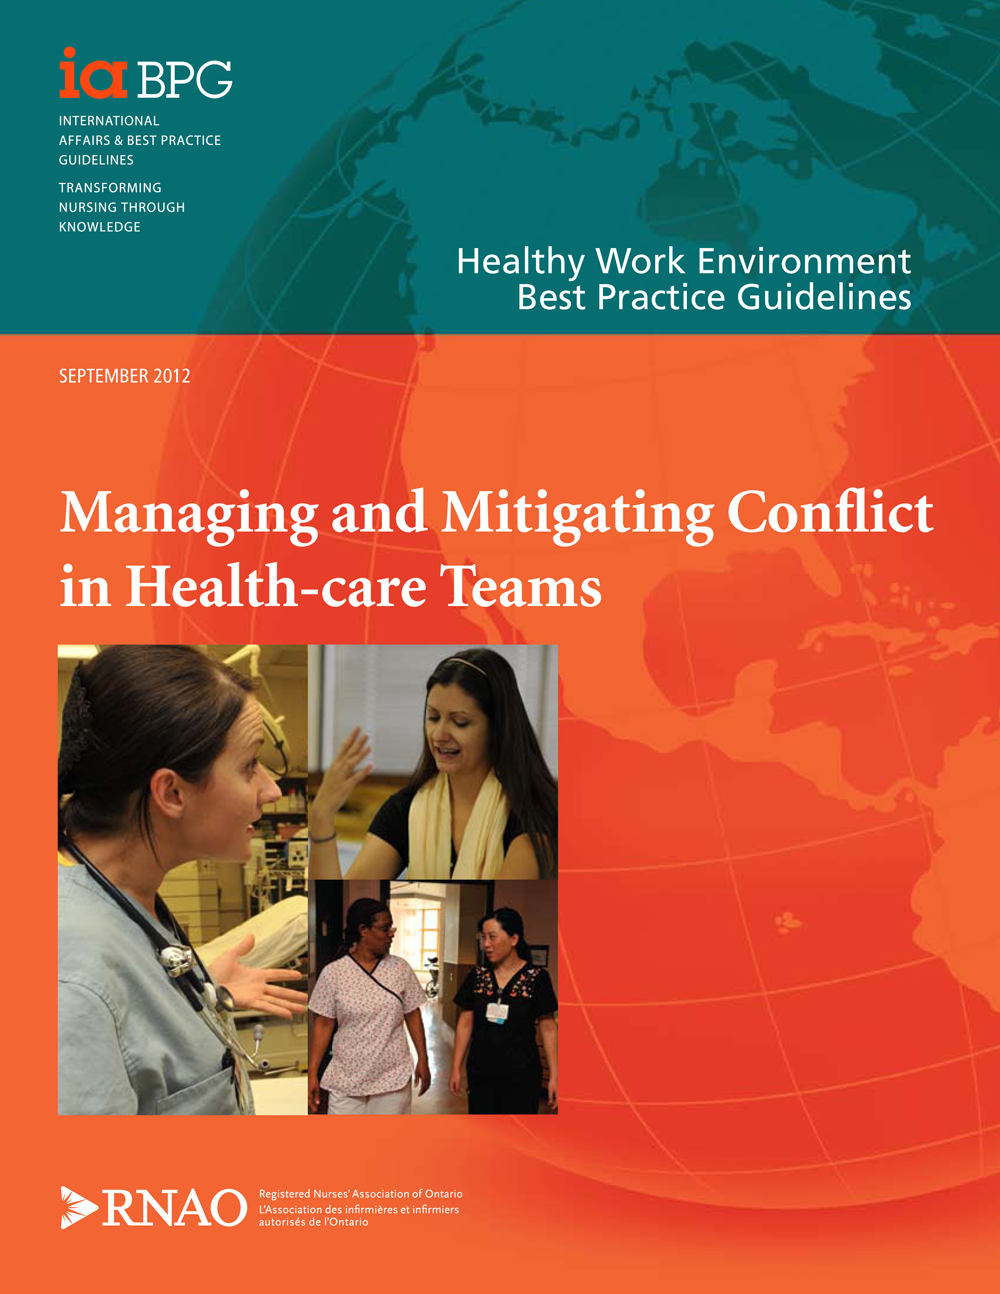 Managing and Mitigating Conflict in Health-care Teams